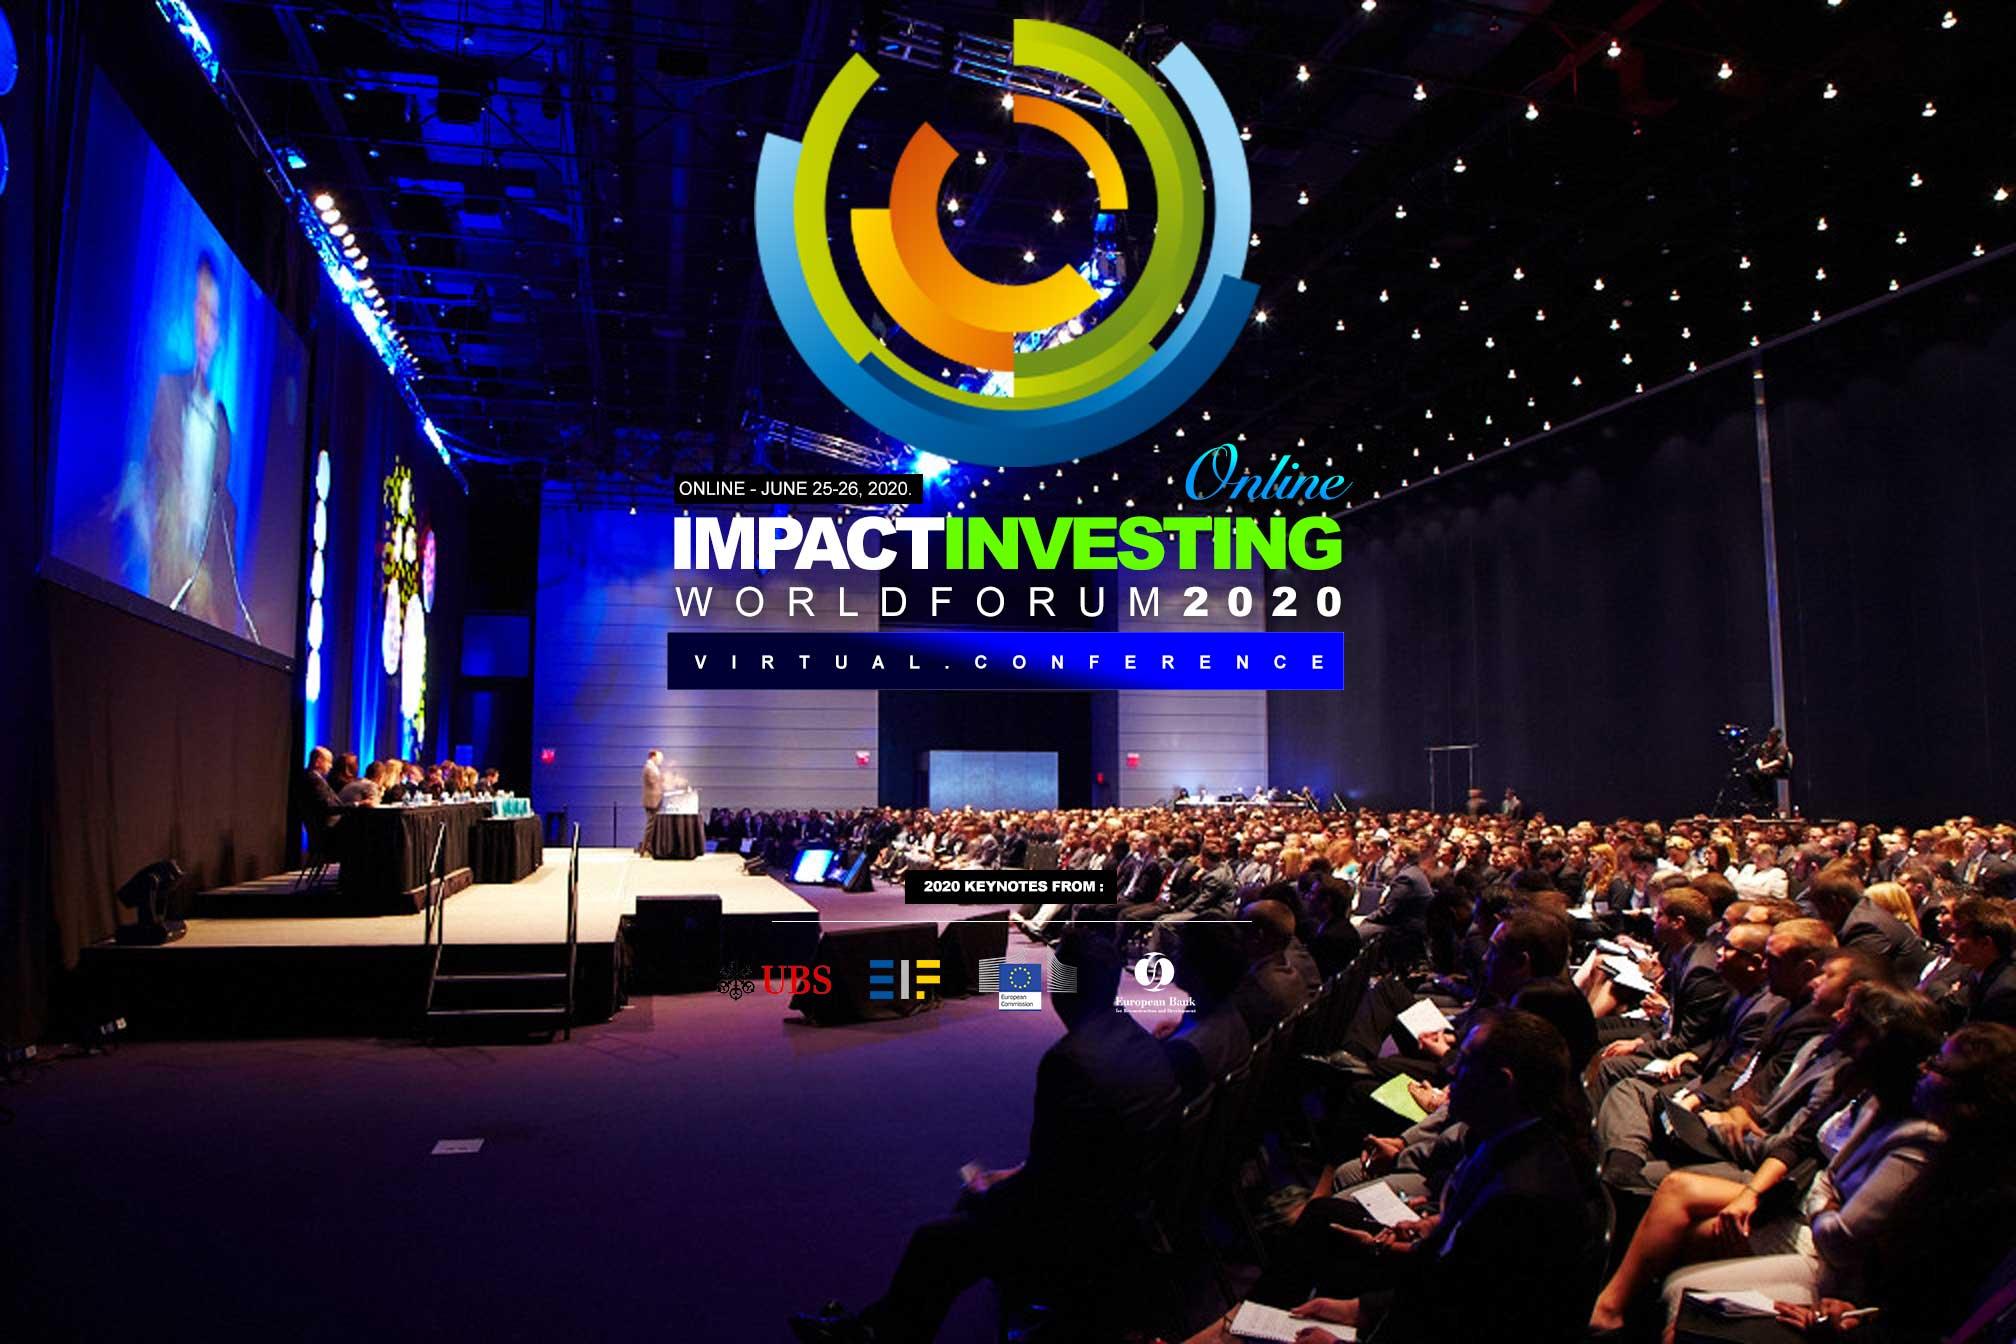 Impact Investing World Forum (IIWF) - Impact Investing Conference